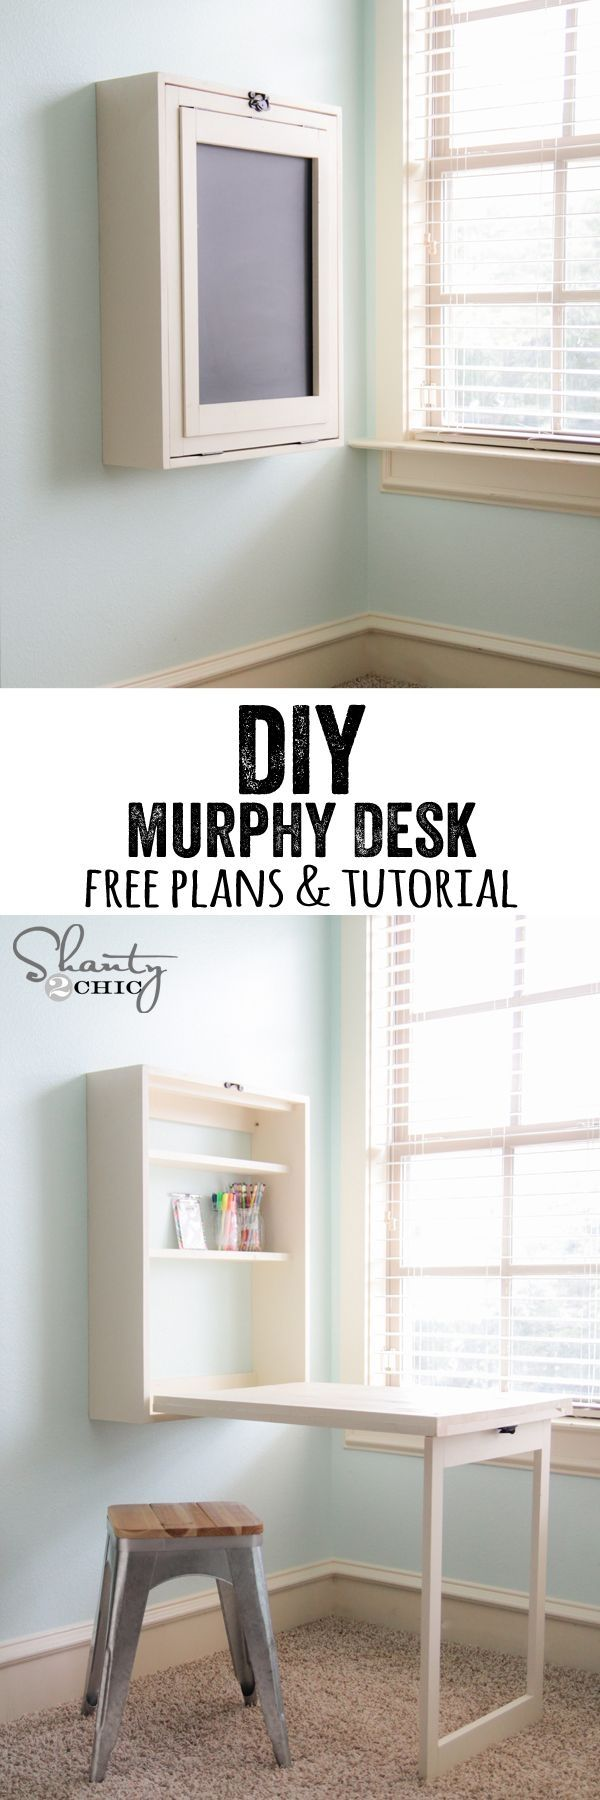 Murphy's Foldout Desk by mdozdor on shanty 2chic, maybe only the picture?